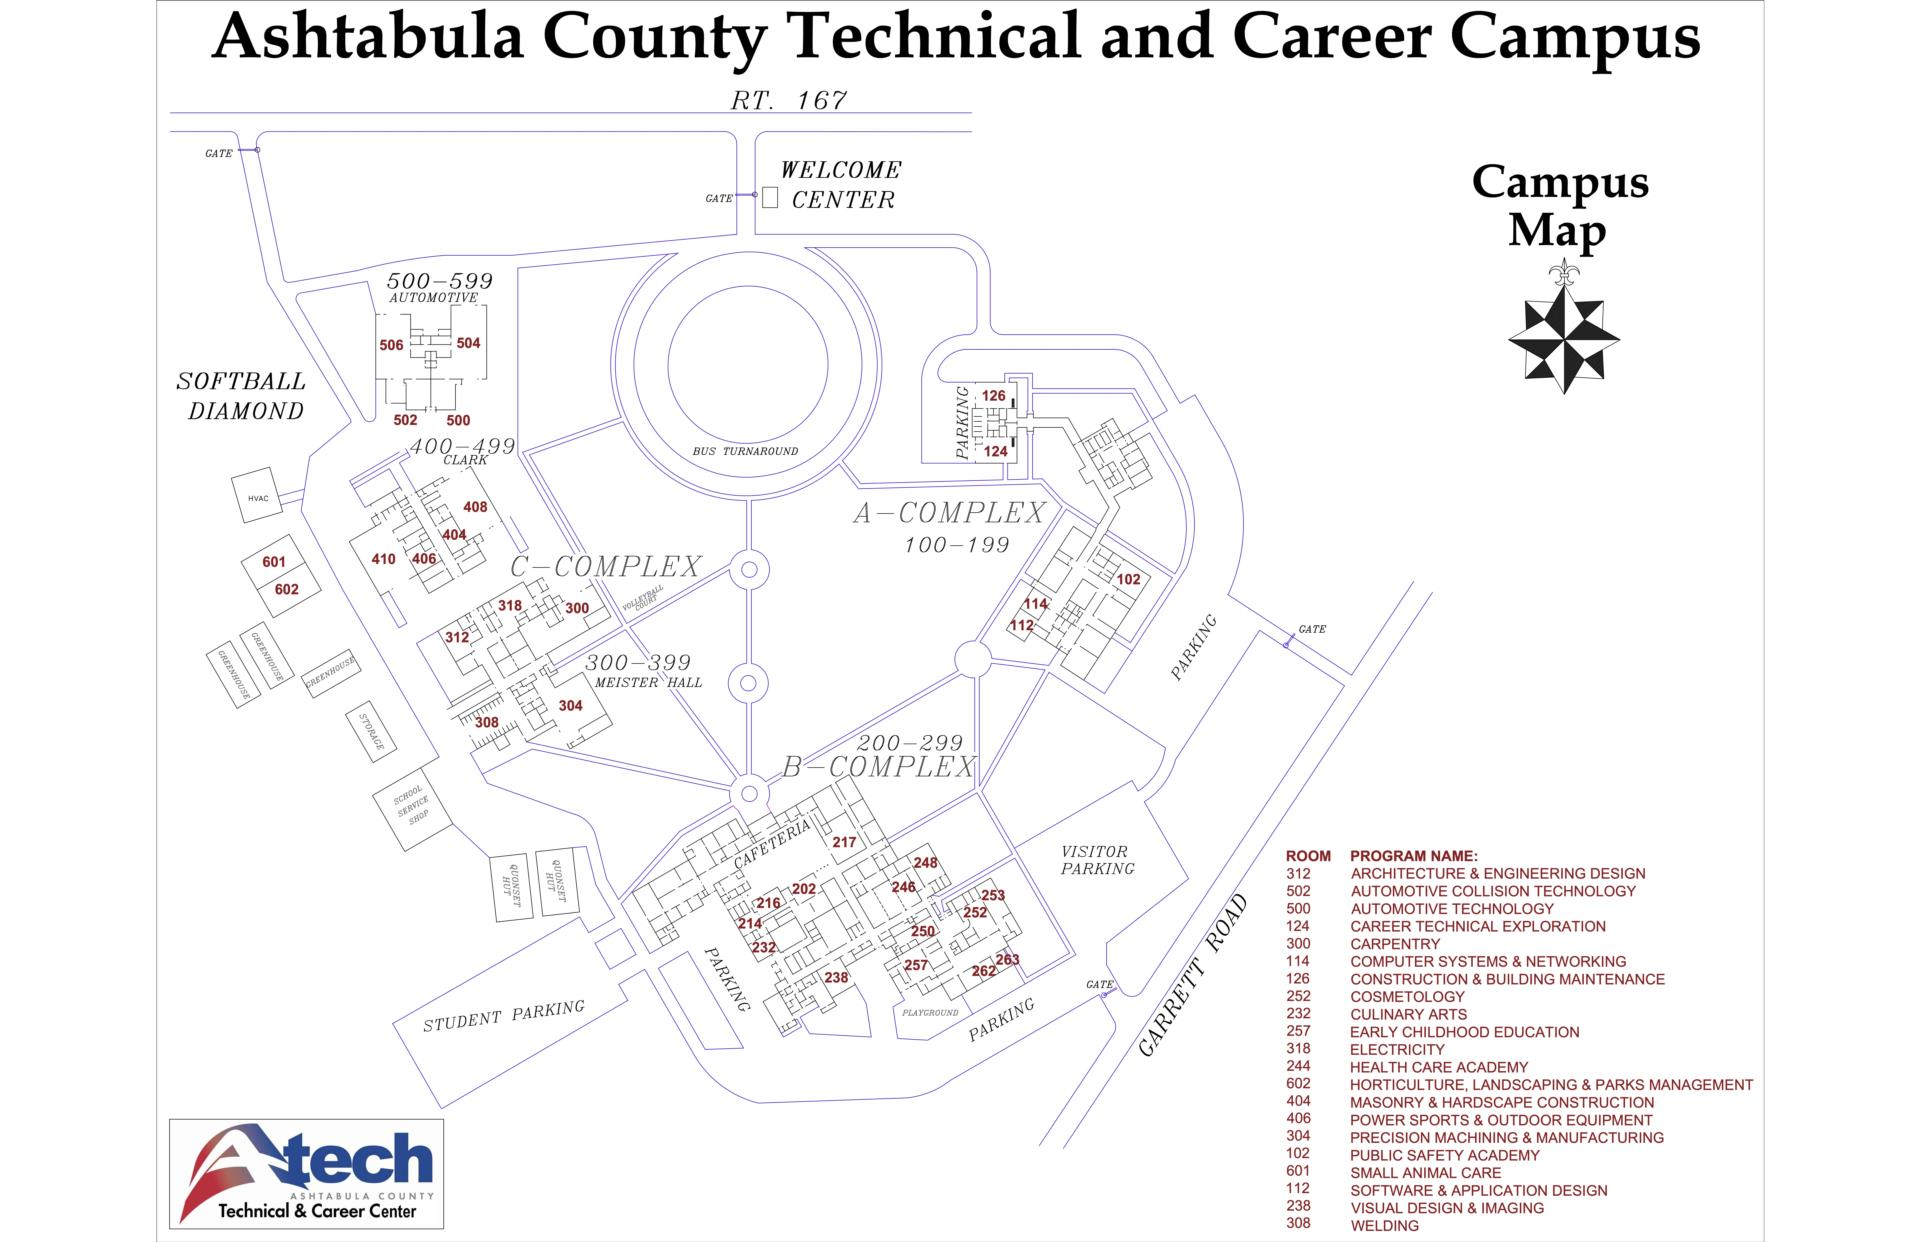 Map to Campus